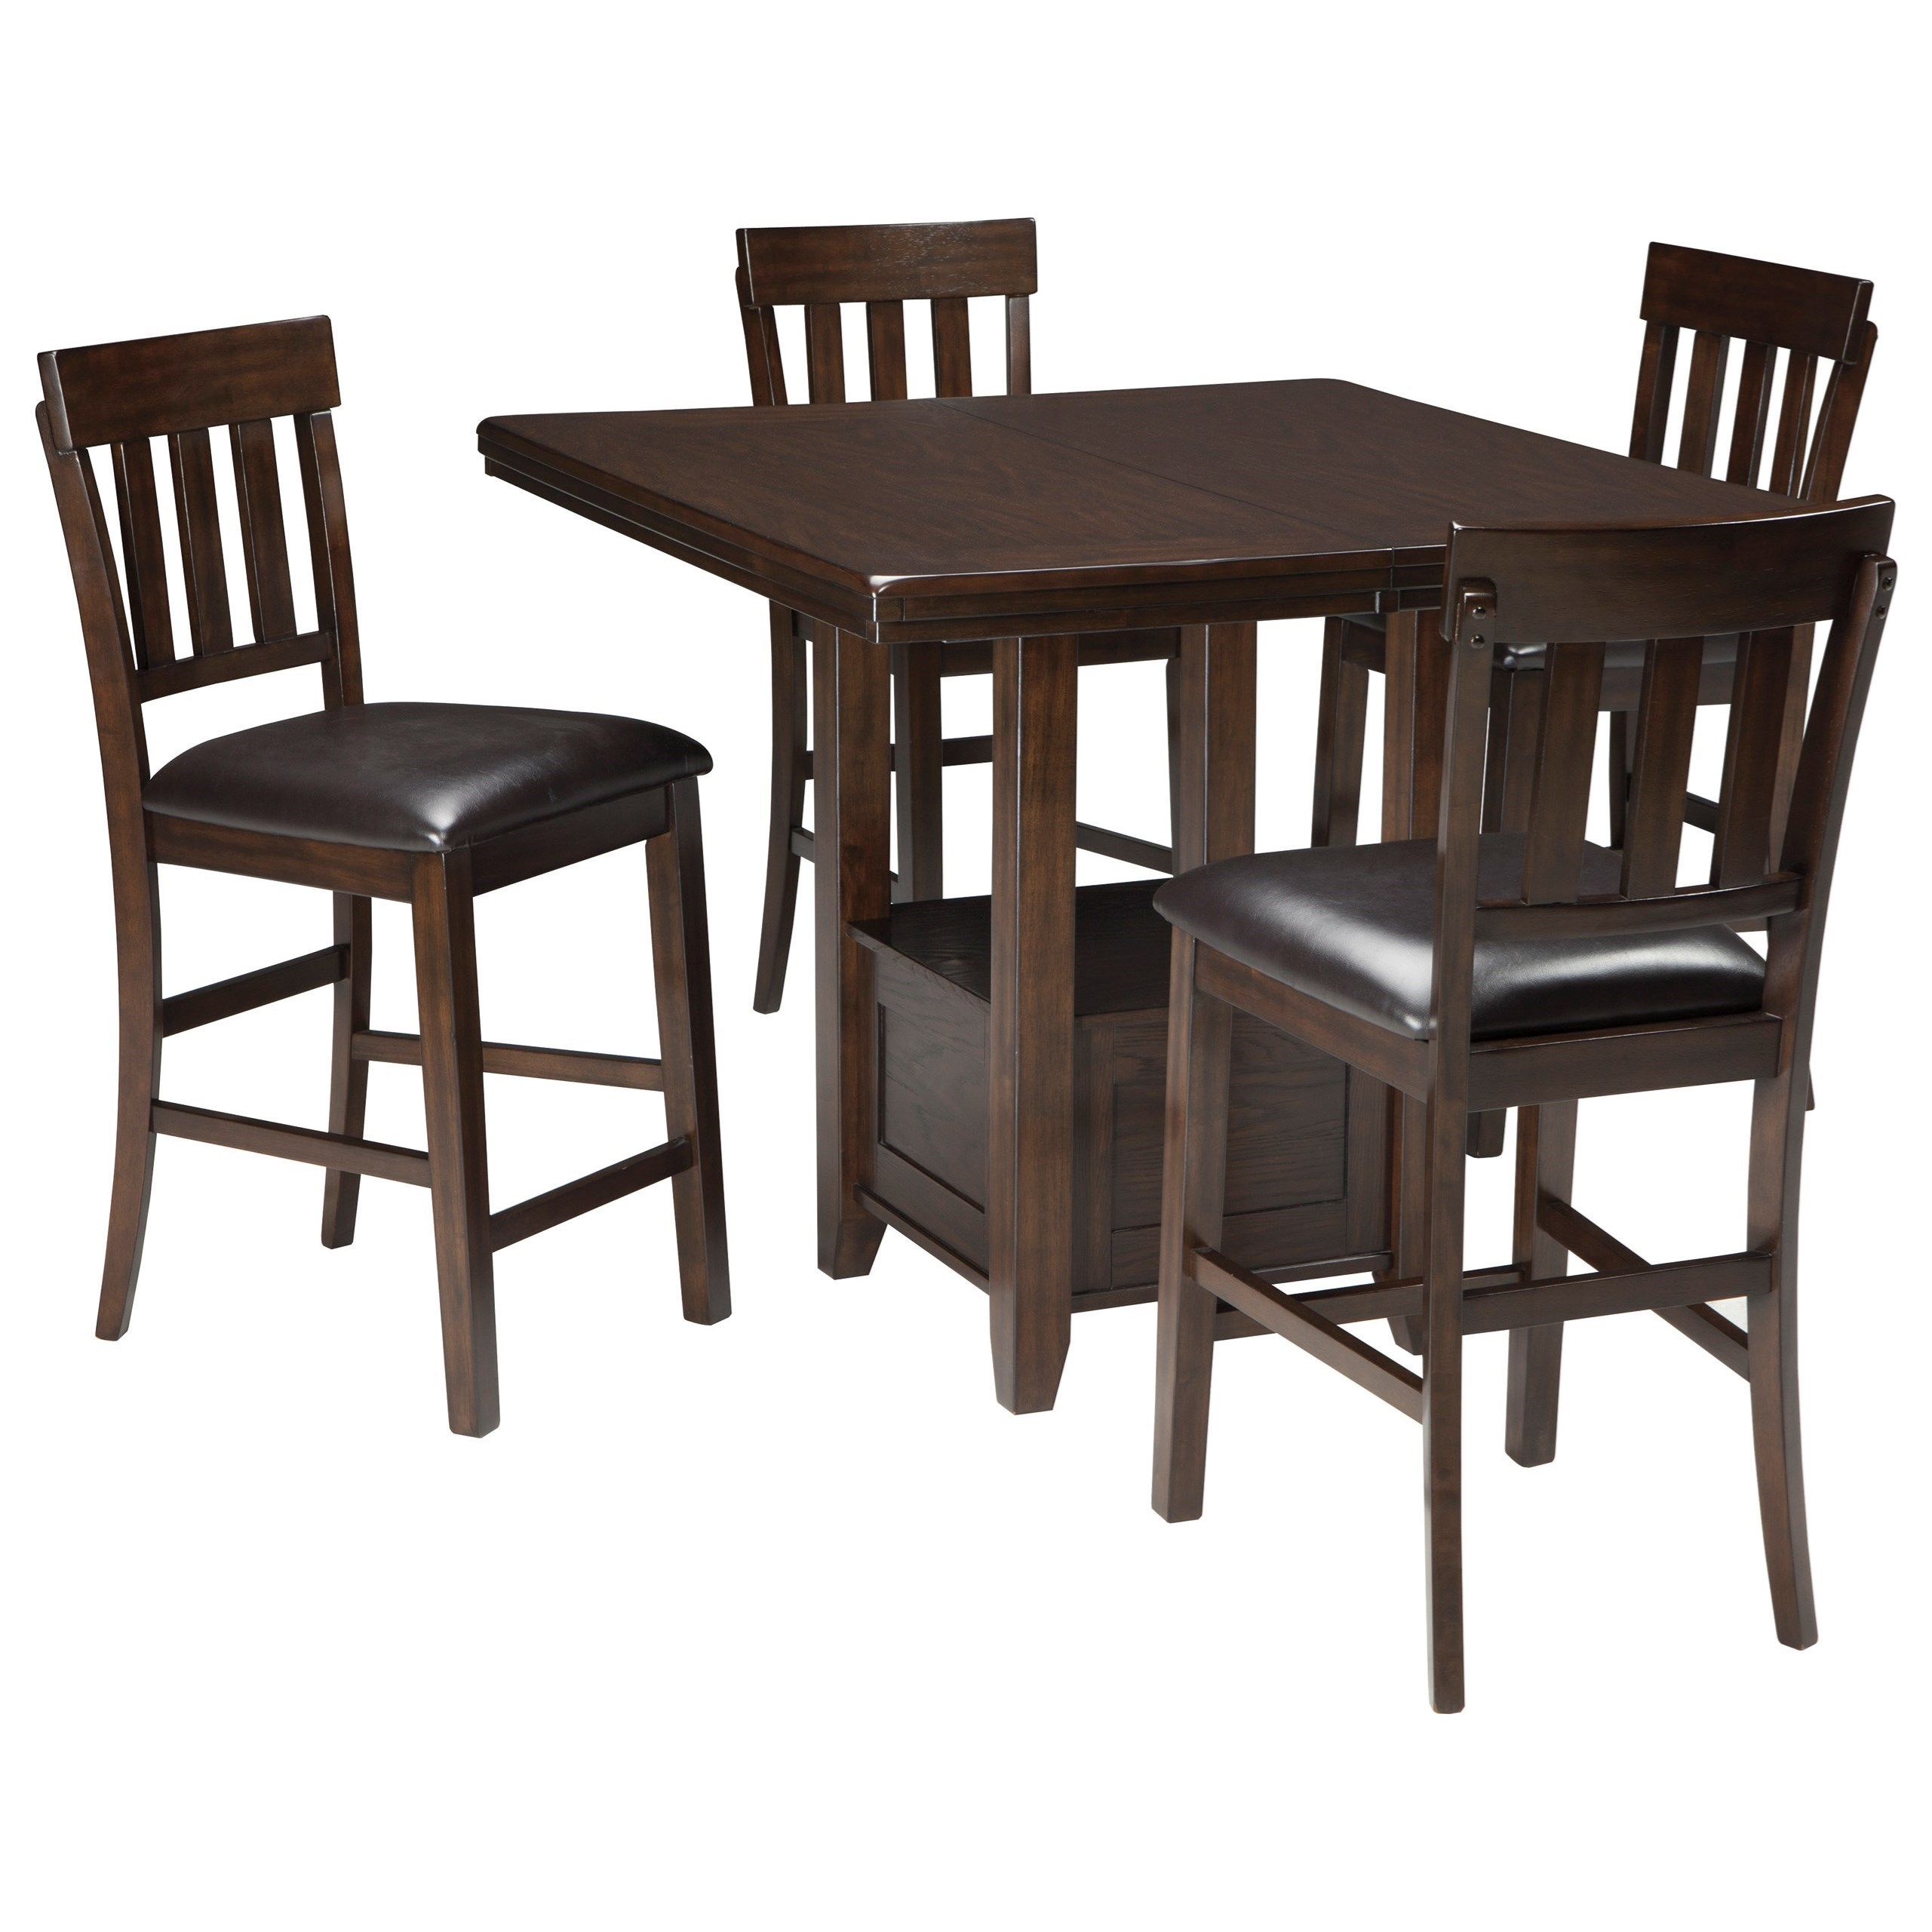 Signature Design by Ashley Haddigan 5-Piece Dining Room Counter Extension Table Set  sc 1 st  Wayside Furniture & Signature Design by Ashley Haddigan 5-Piece Dining Room Counter ...